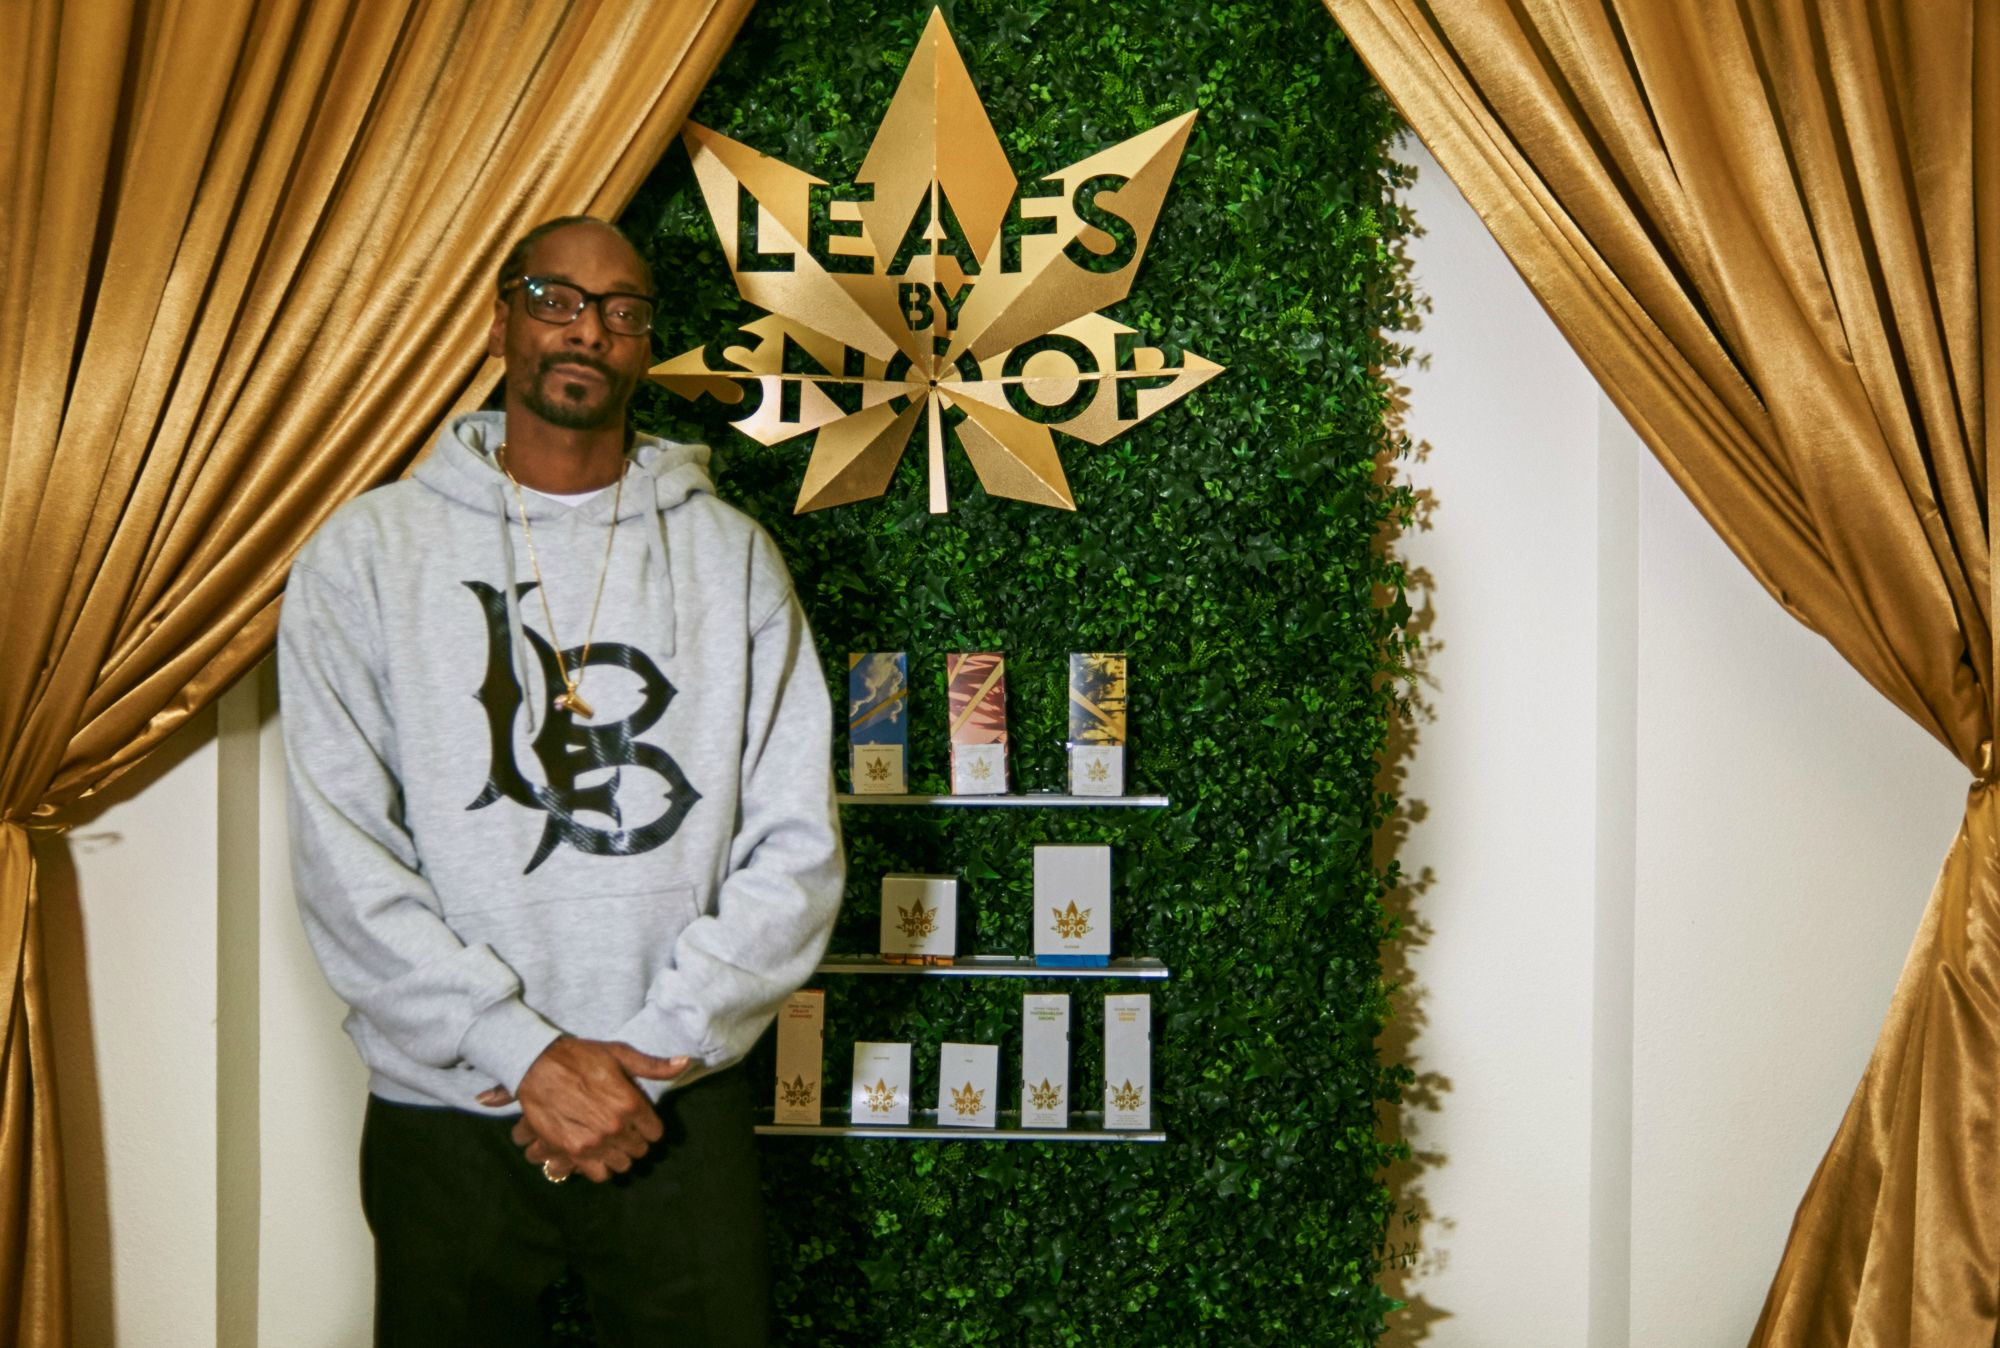 Snoop Dogg lance Leafs